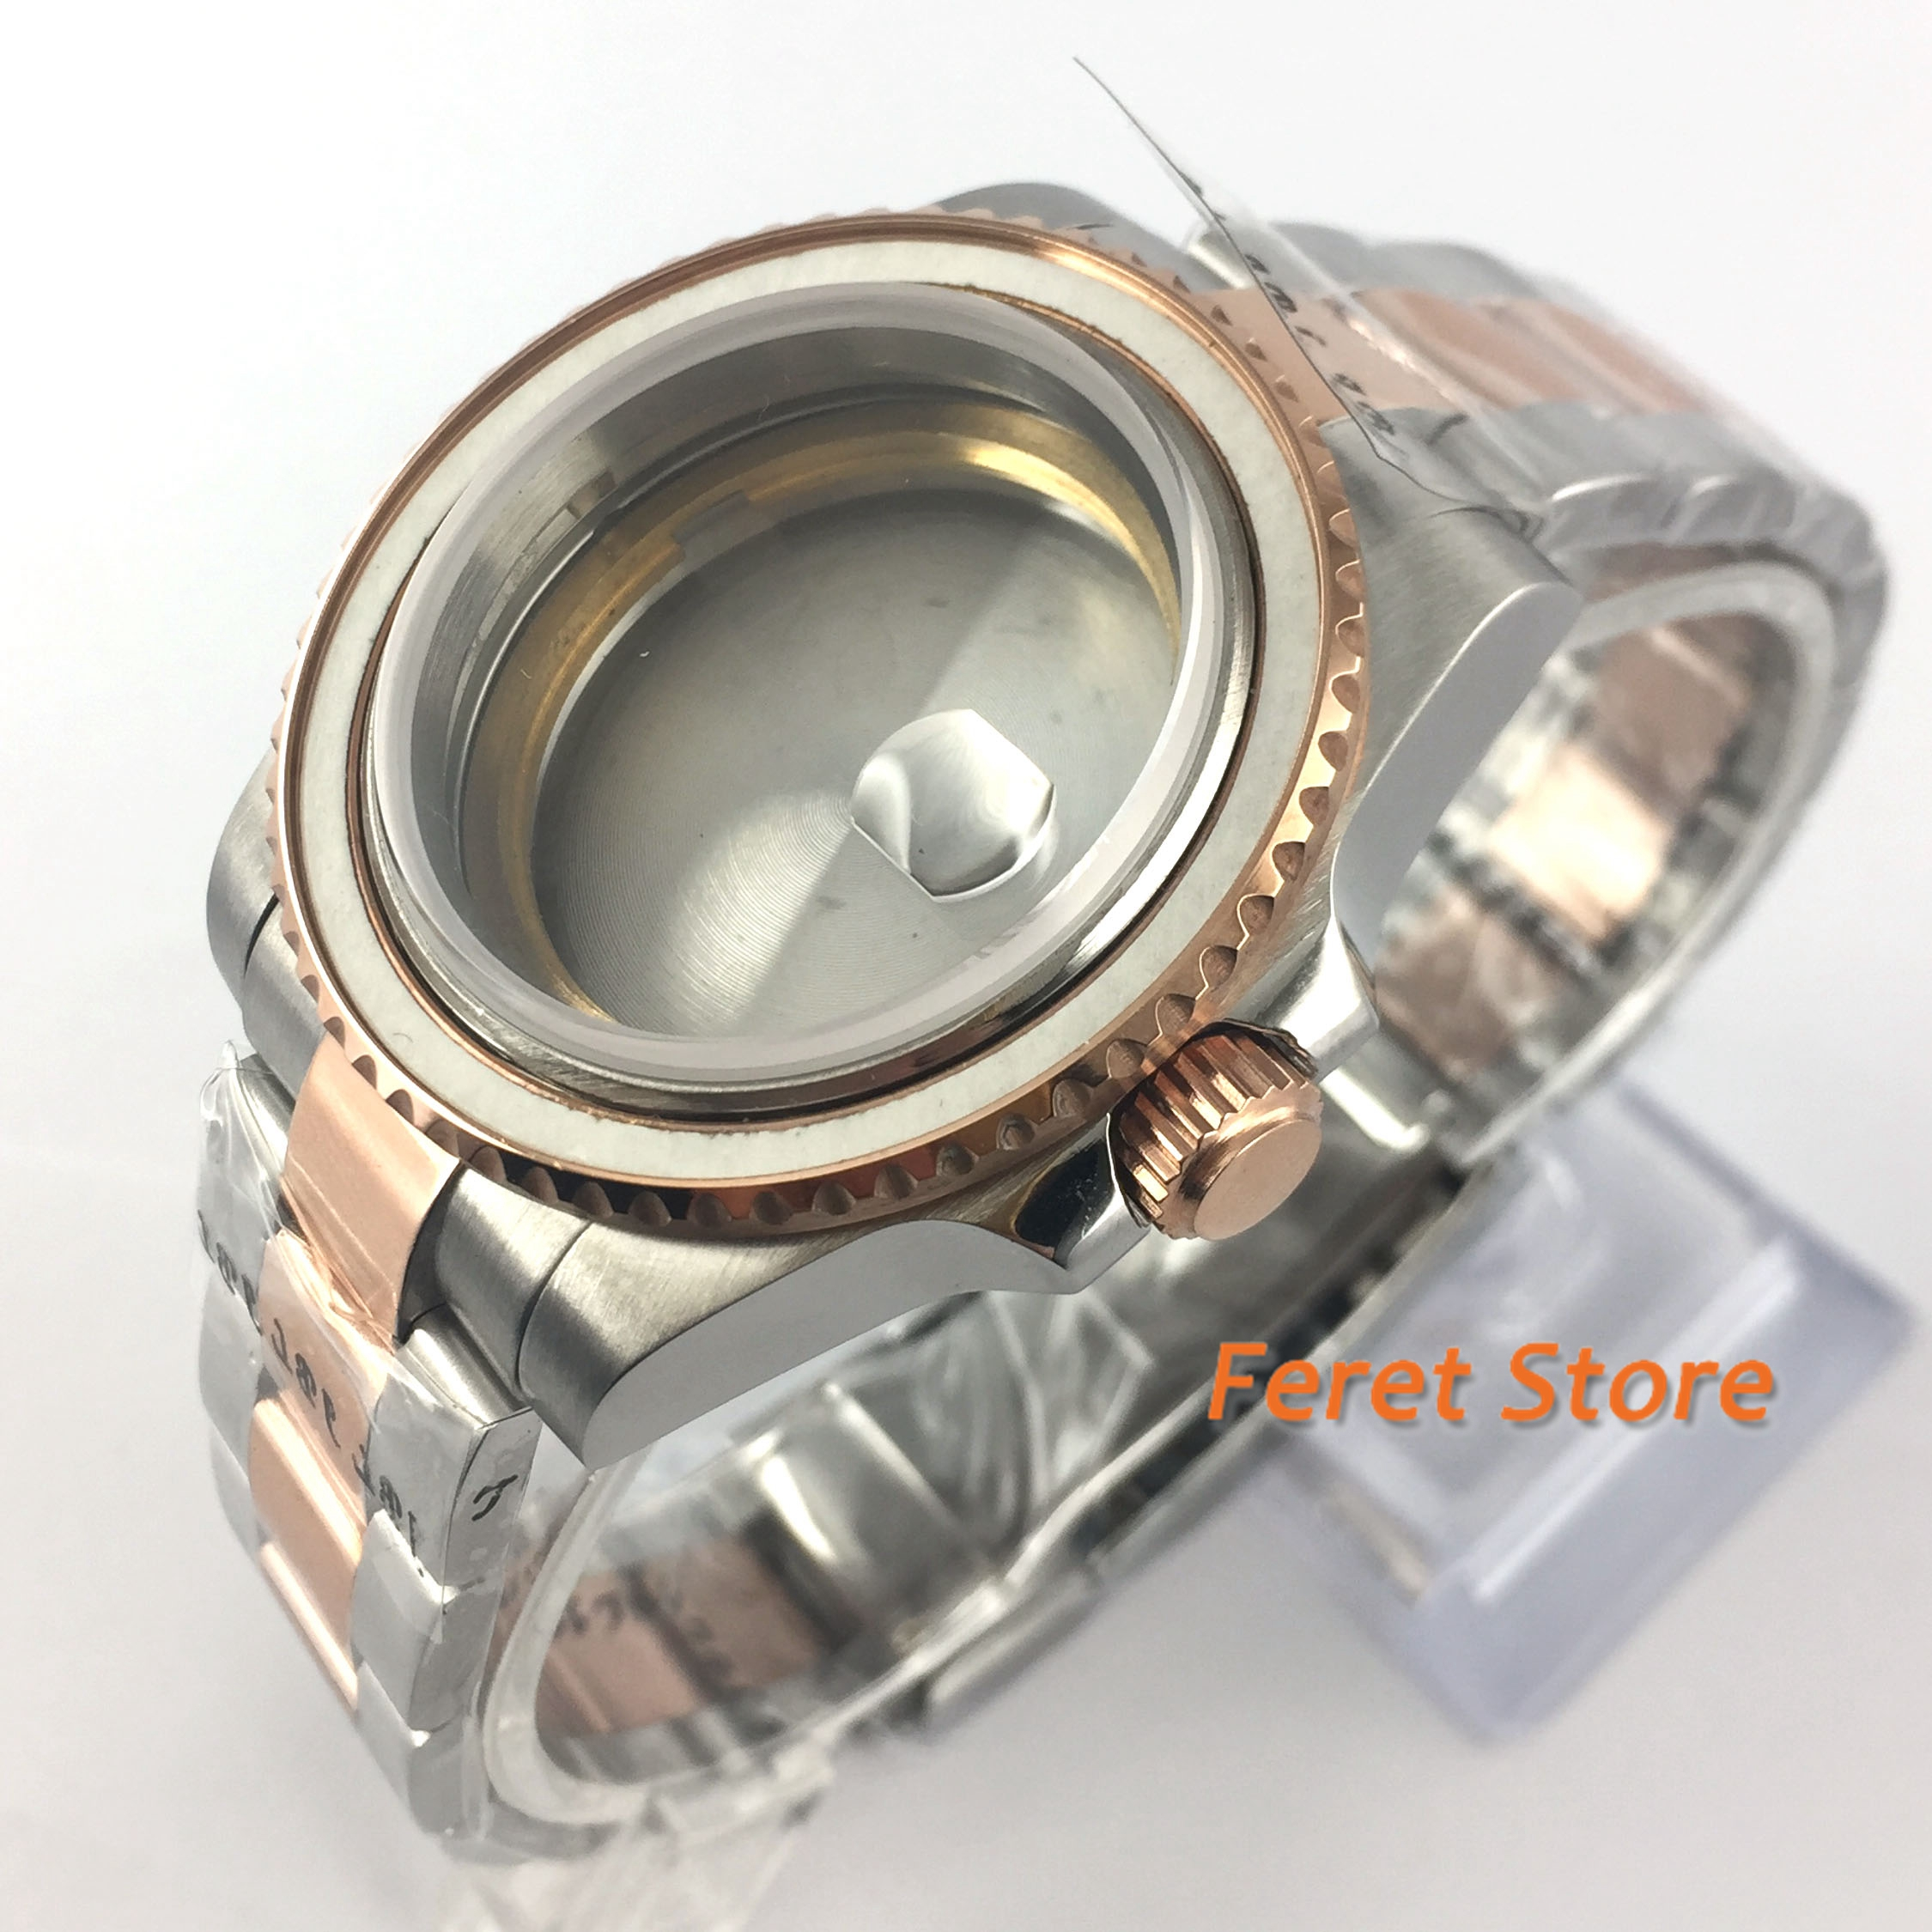 40mm sapphire glass Watch Case date with steel-golden strap fit ETA 2836/Miyota8215/8205 automatic movements | Repair Tools & Kits